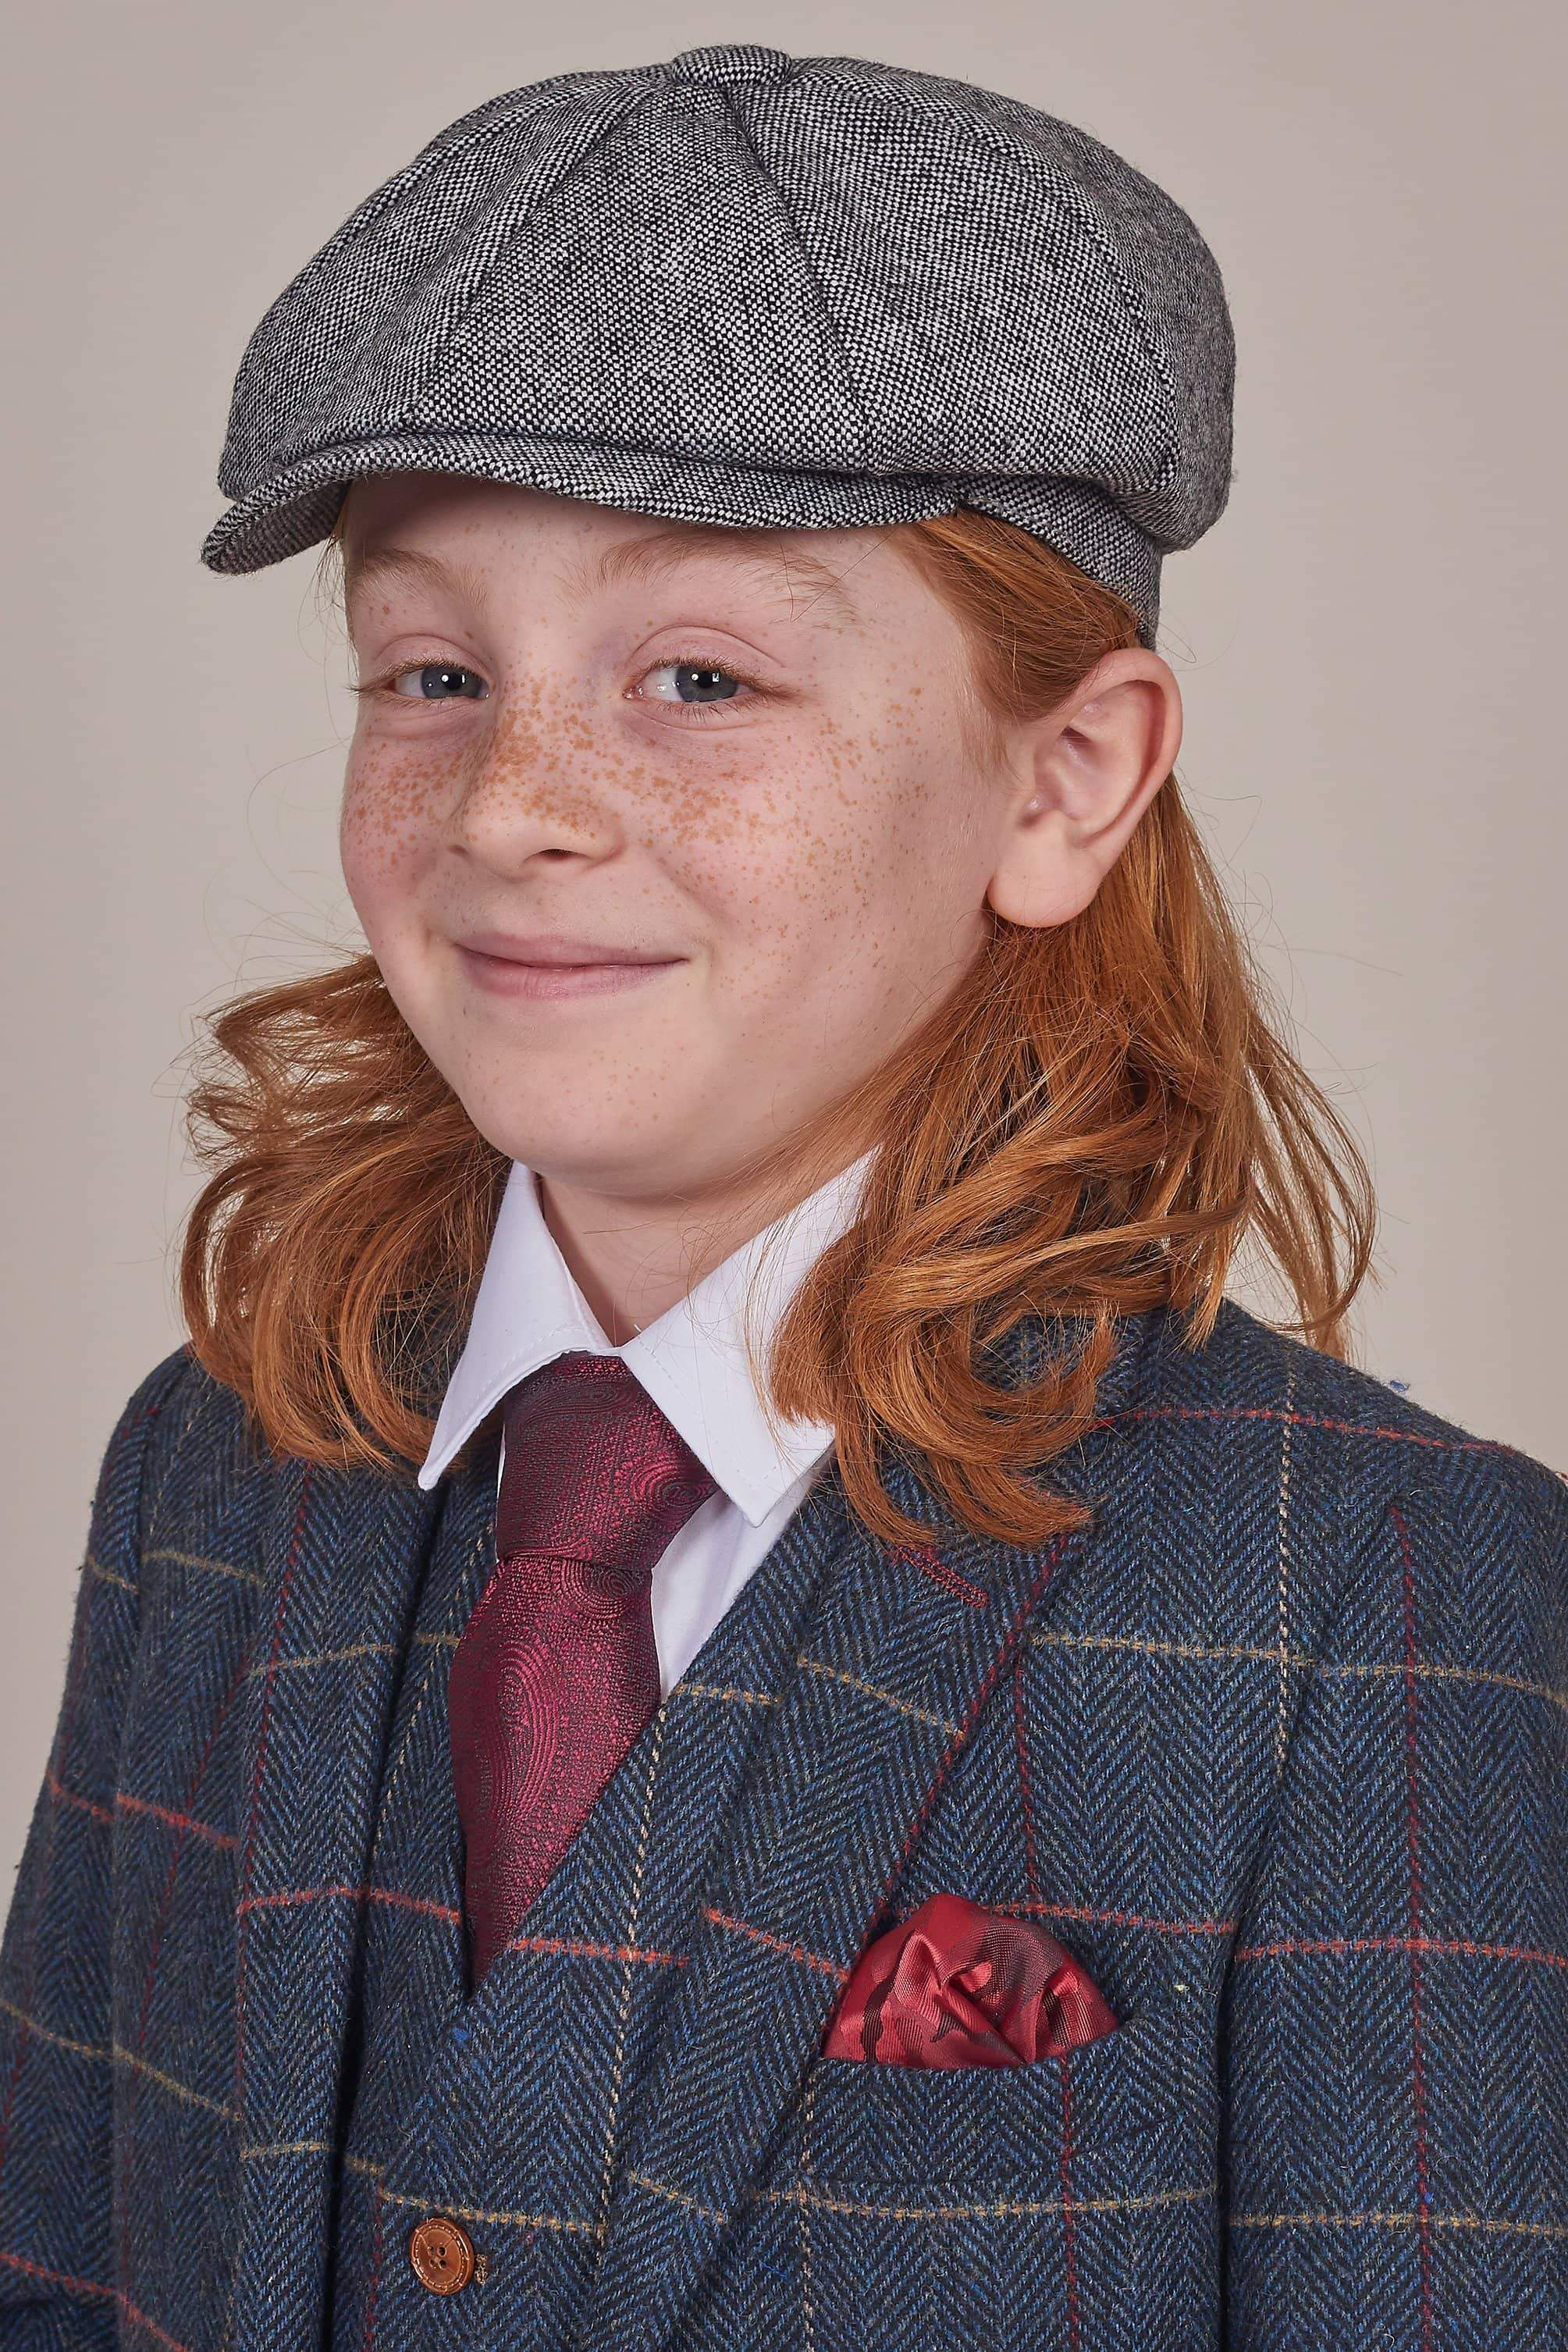 8f47ca44f Boys Salt & Pepper Tweed Newsboy 8 Piece Hat - £20.00 - Master Debonair